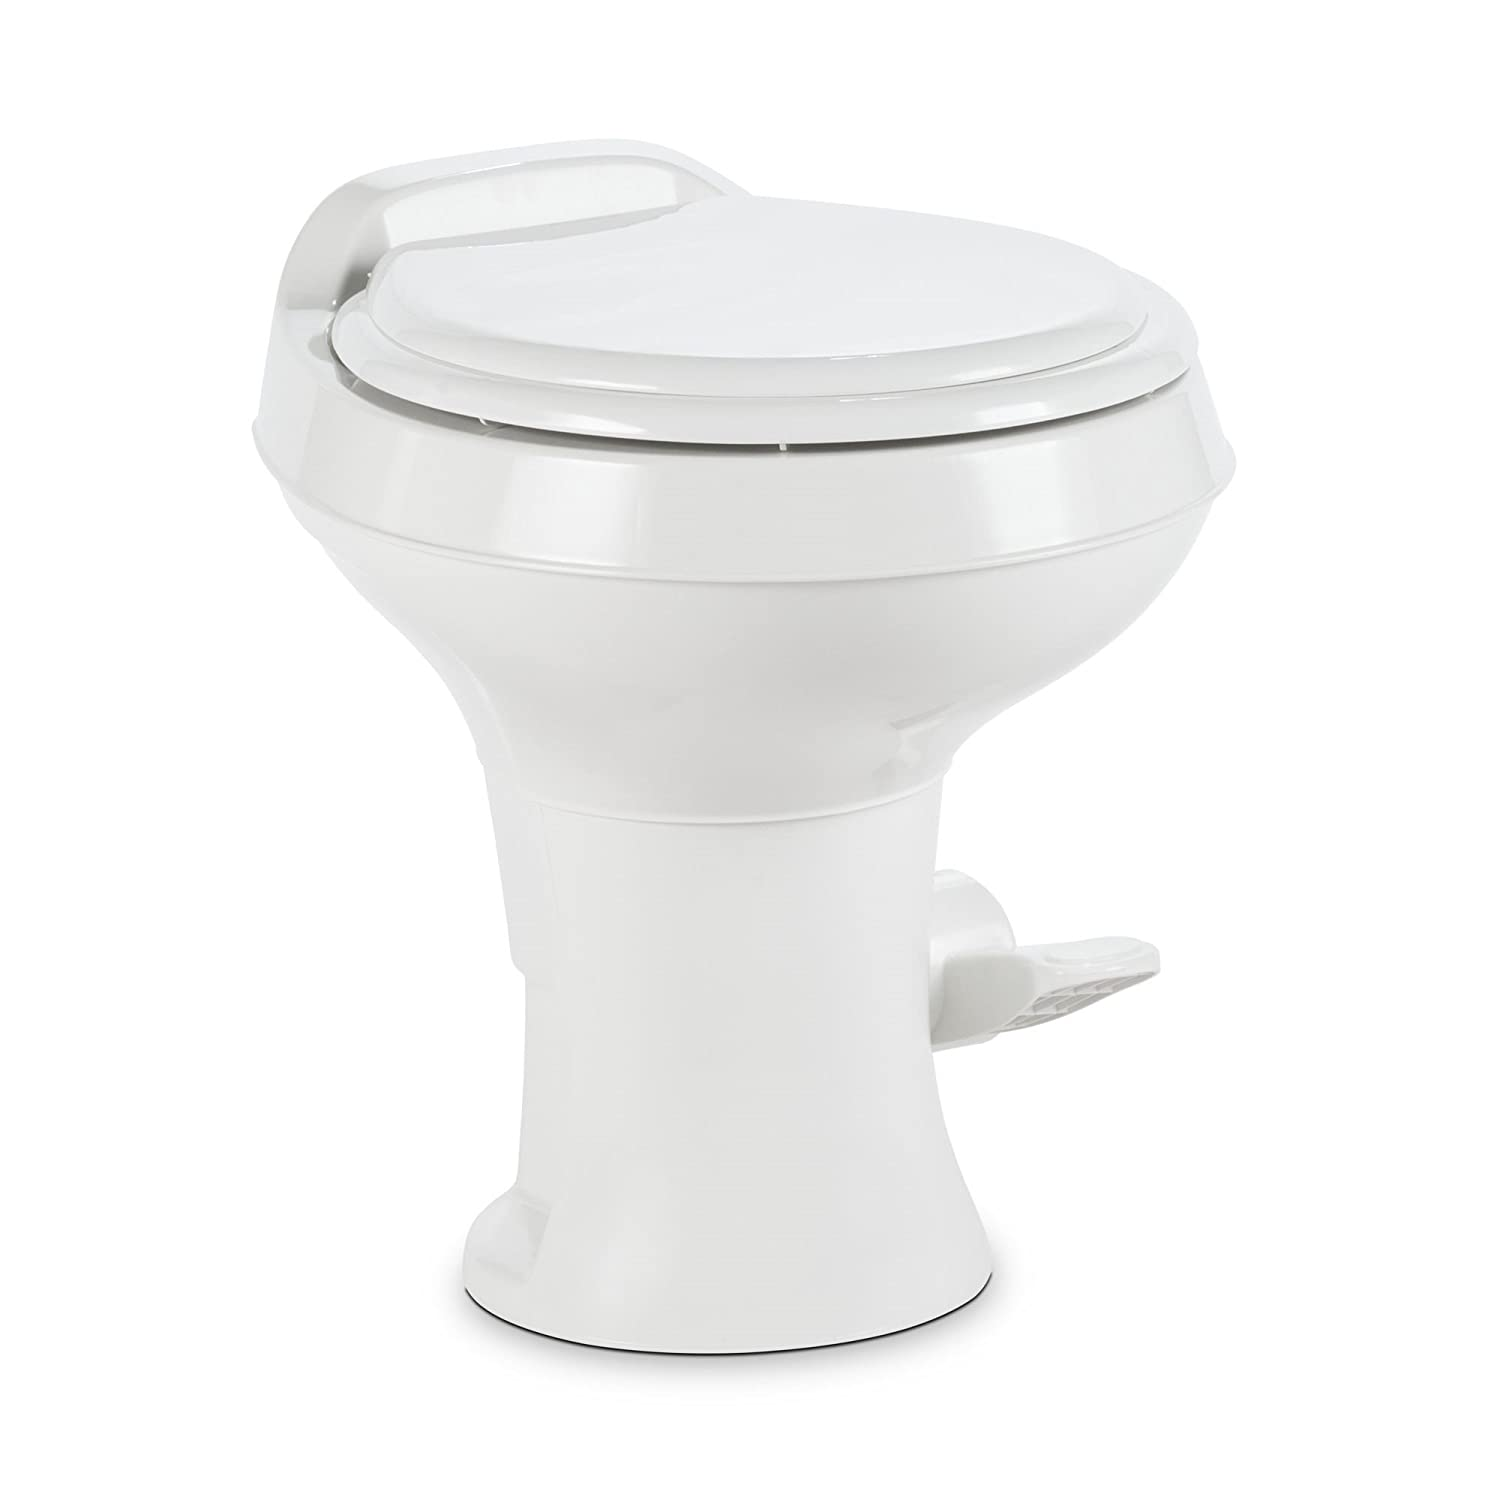 Dometic 302301671 300 Series Low Profile Toilet, White